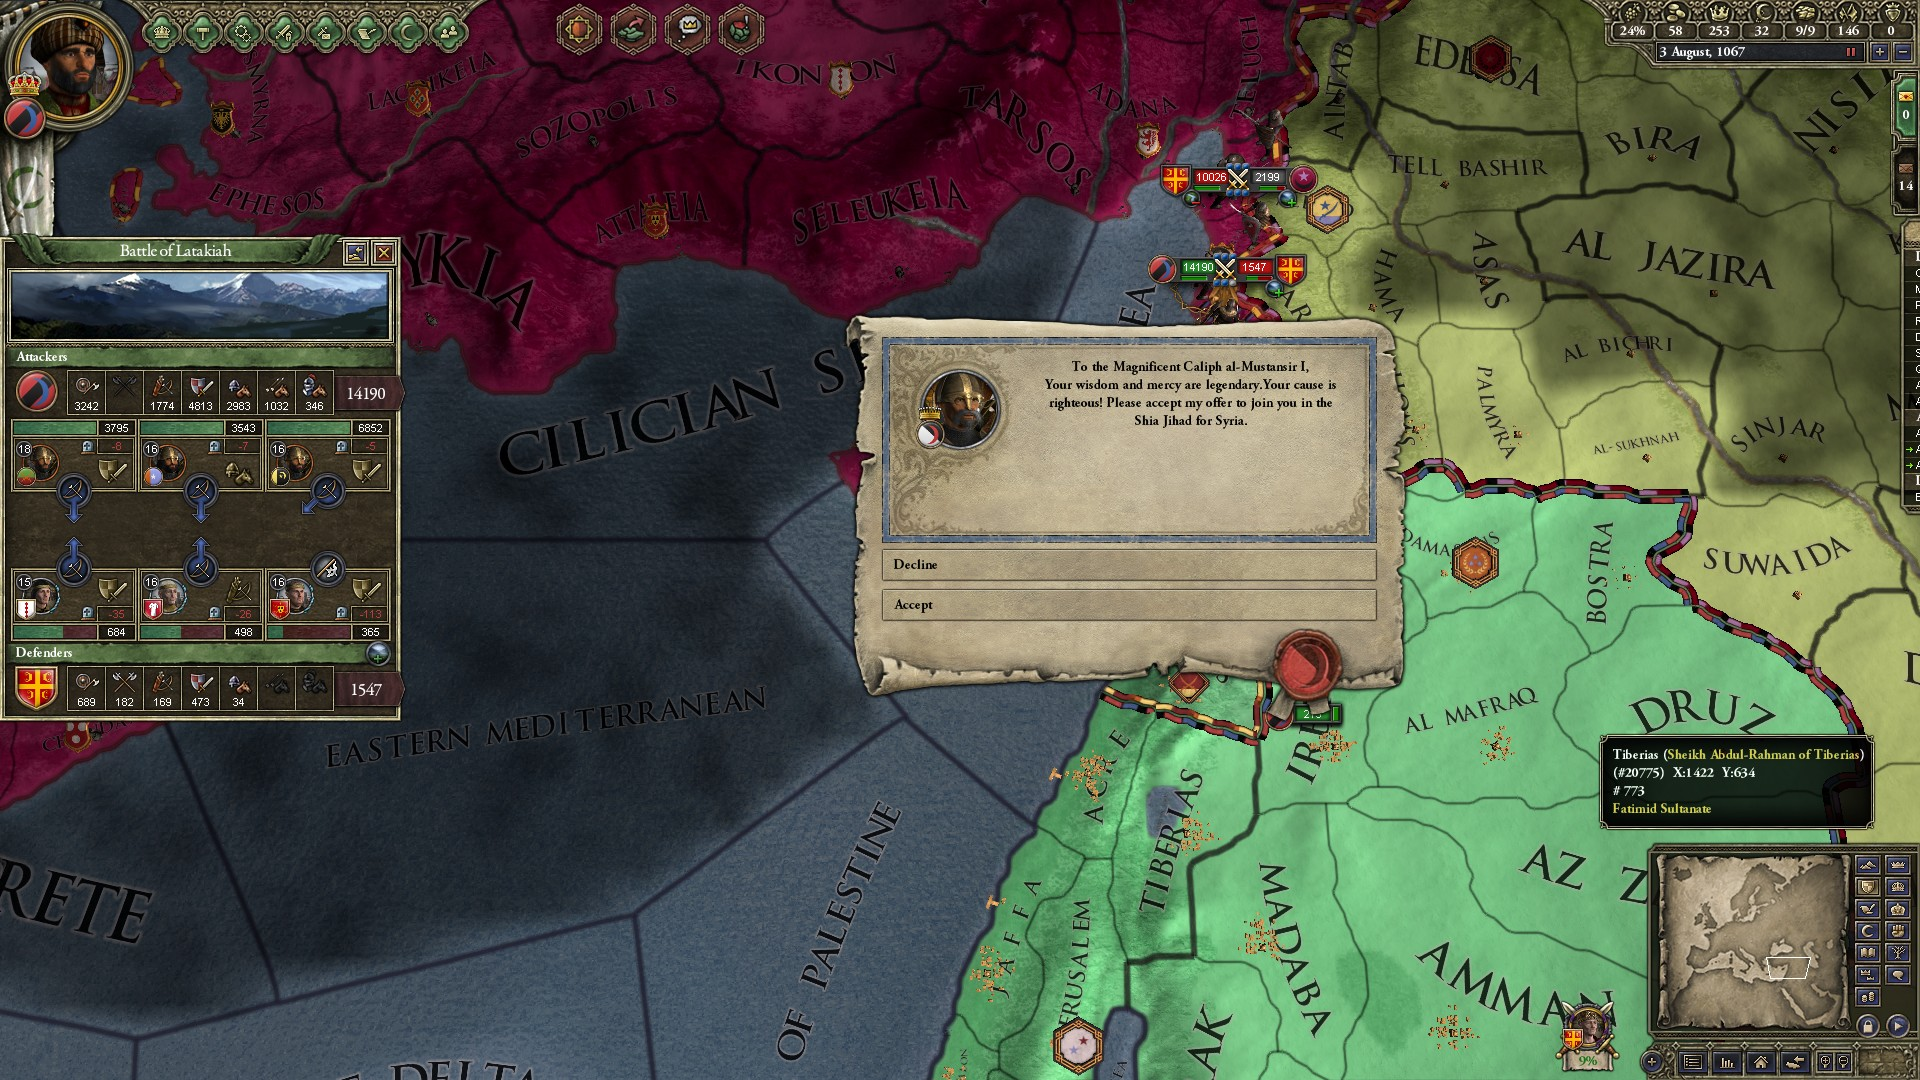 Expansion - Crusader Kings II: Sword of Islam screenshot